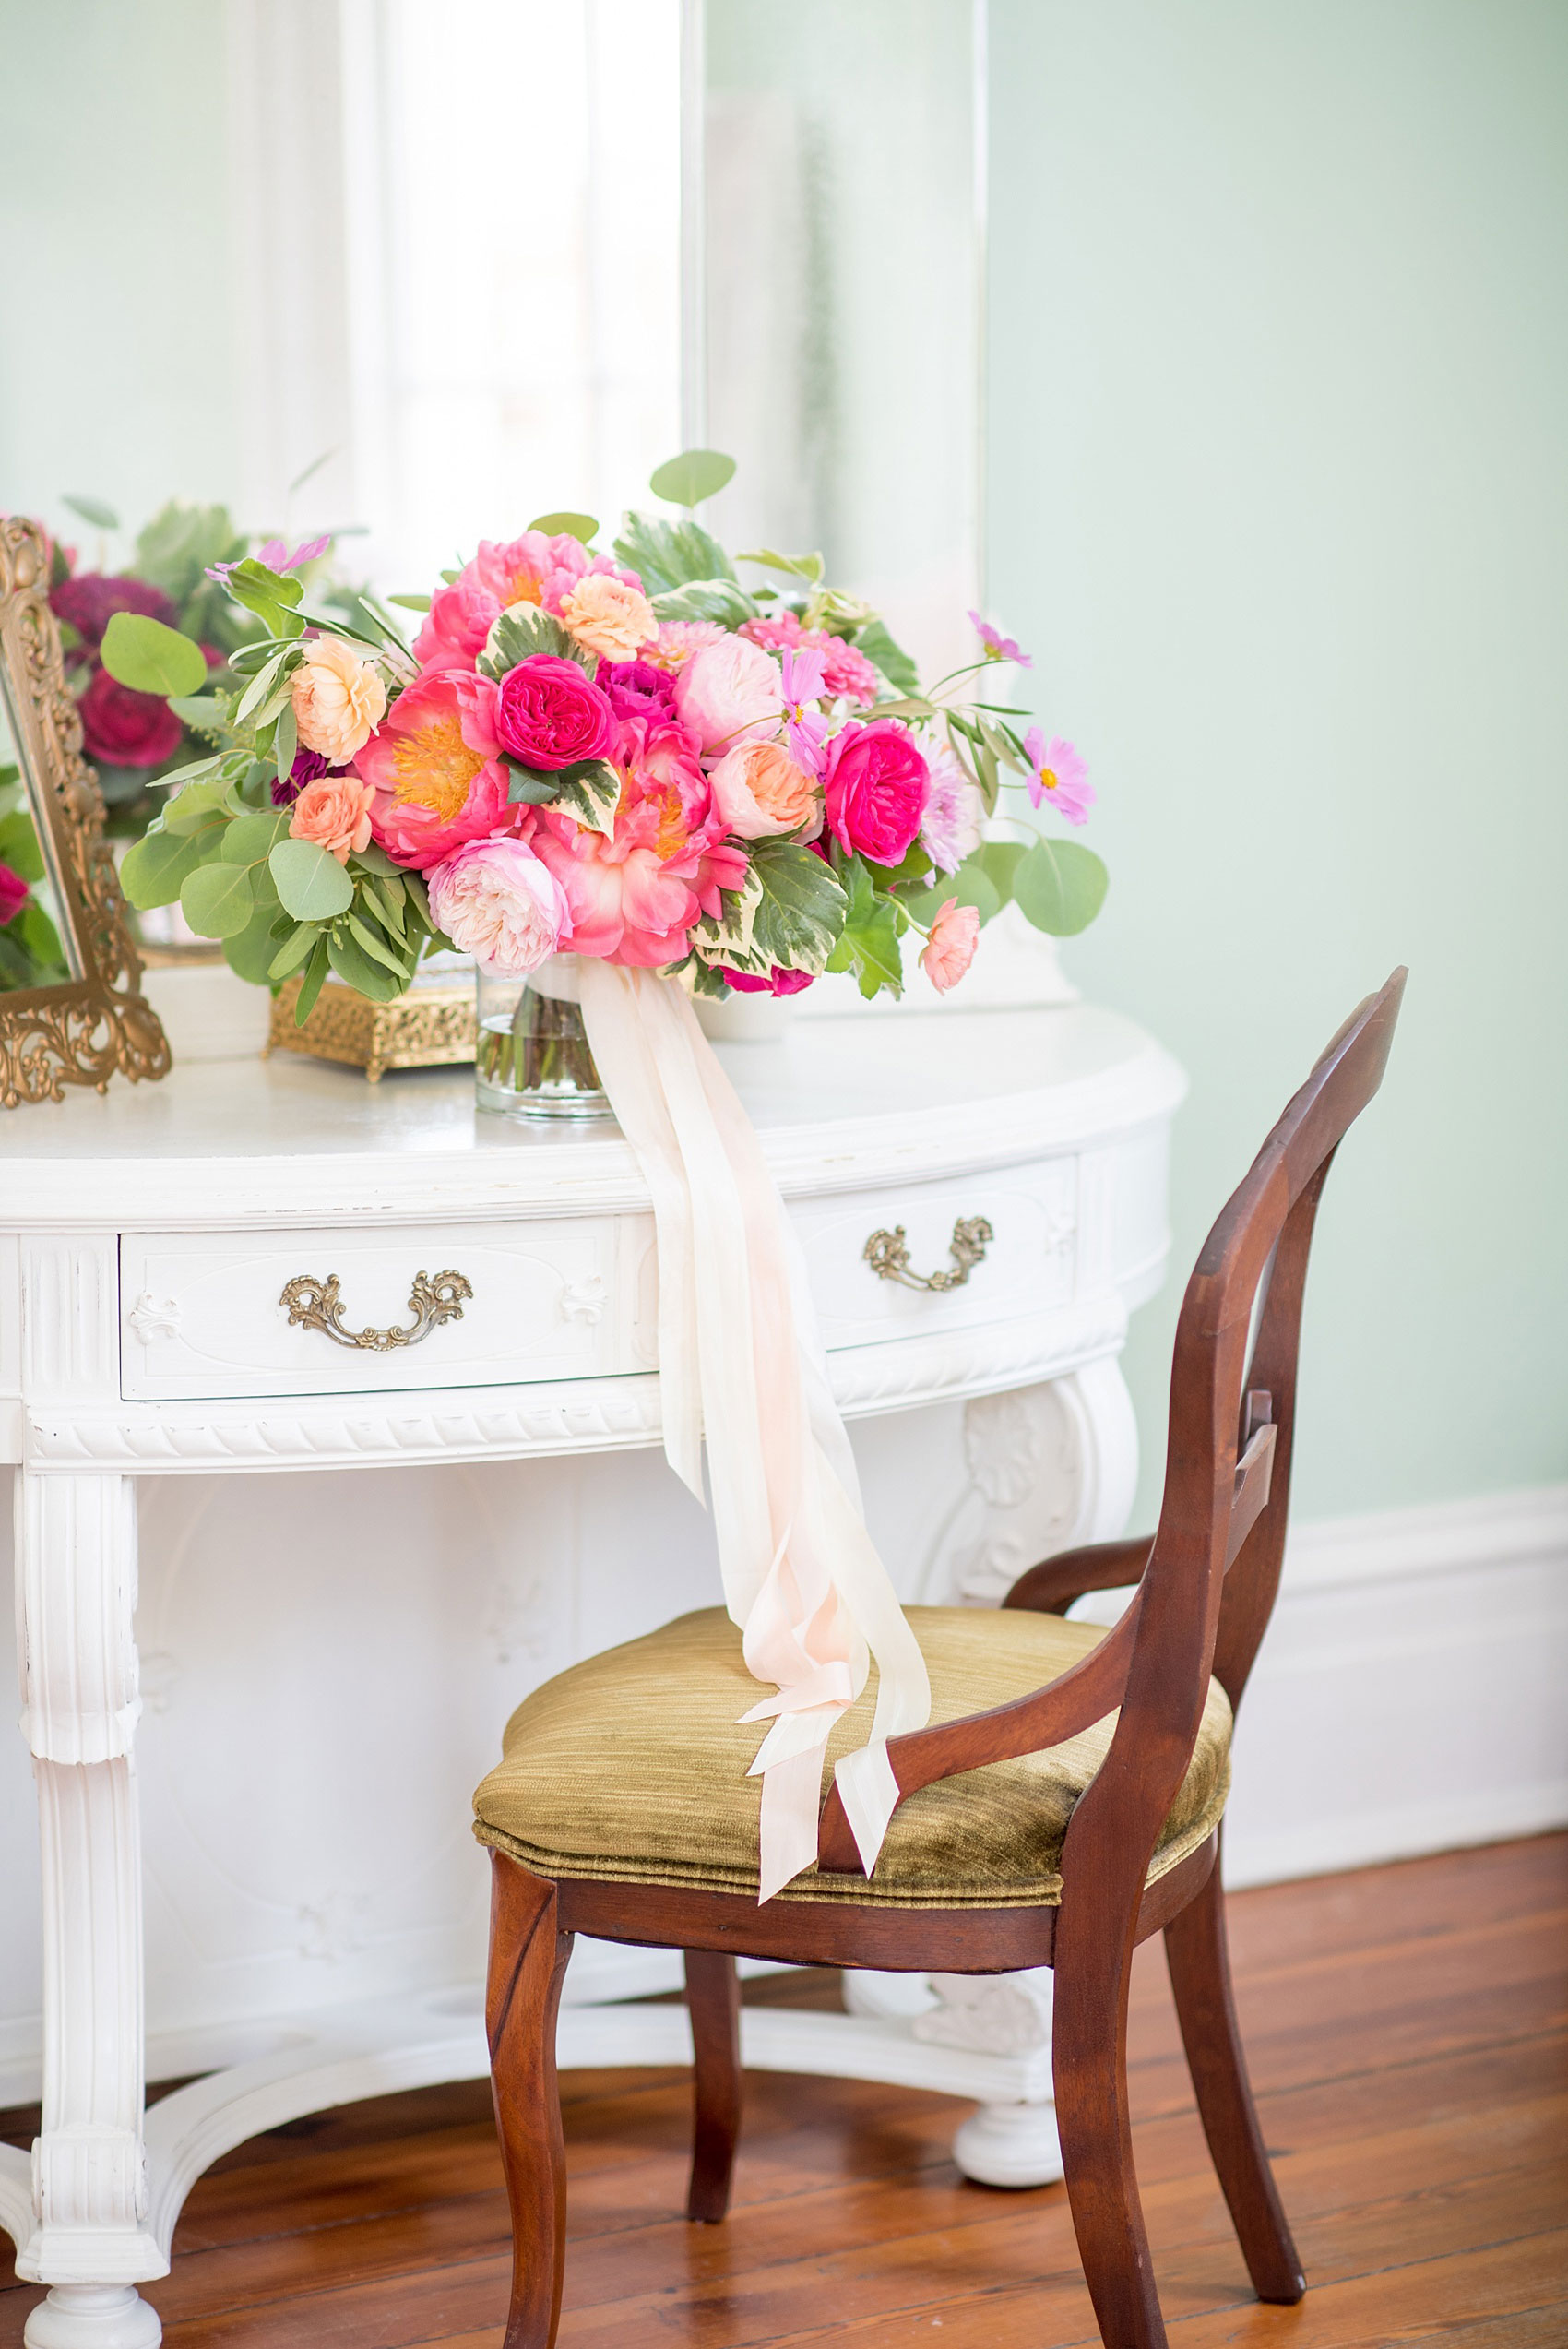 Mikkel Paige Photography wedding photos at The Merrimon-Wynne House in downtown Raleigh. The bride carried a colorful full bouquet with dahlias, garden roses, eucalyptus and peonies, complete with long silk ribbon wrap by Meristem Floral.